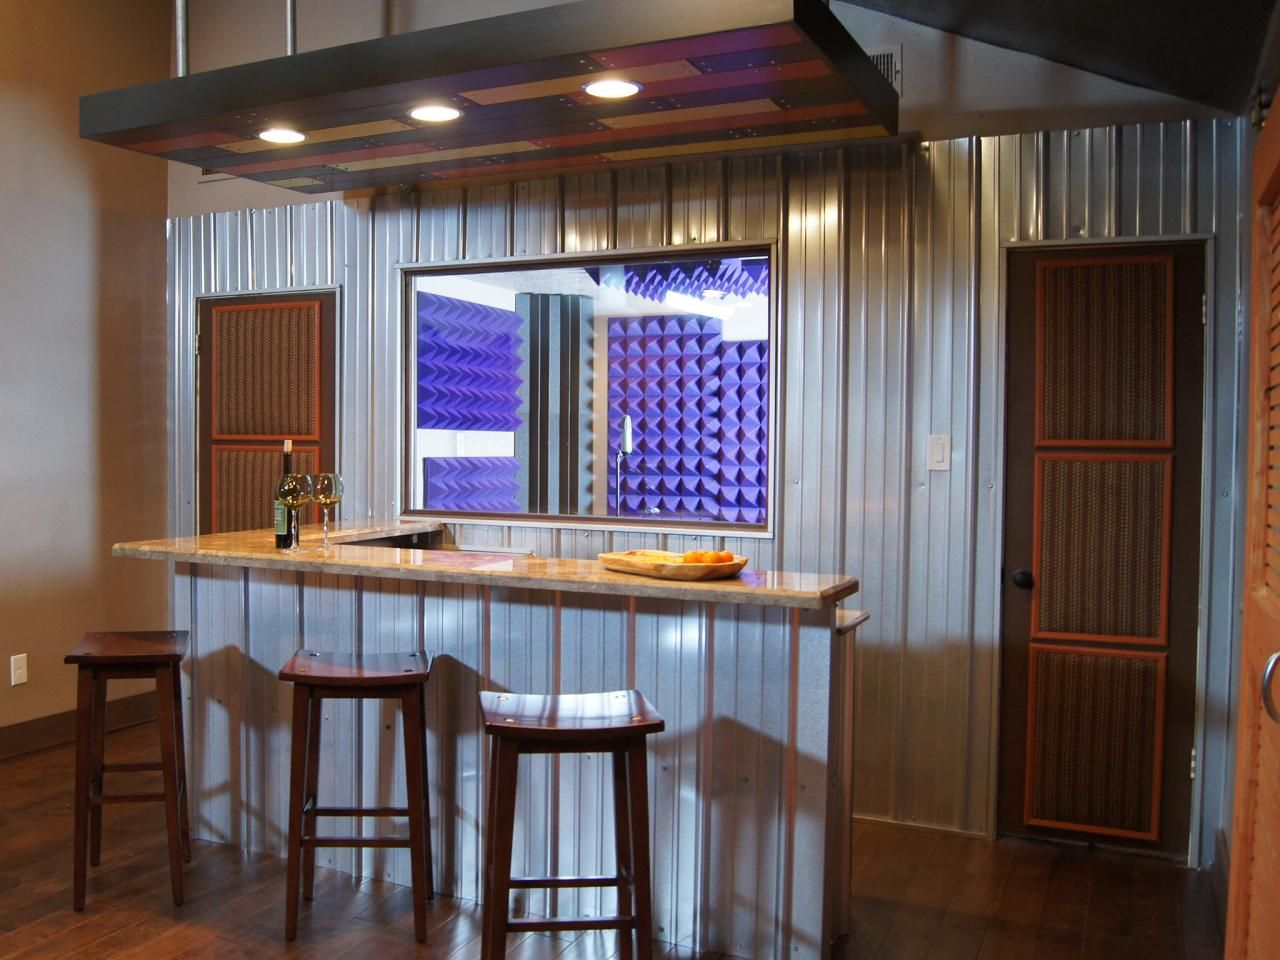 Diy Basement Bar Plans. Diy Basement Bar Plans B